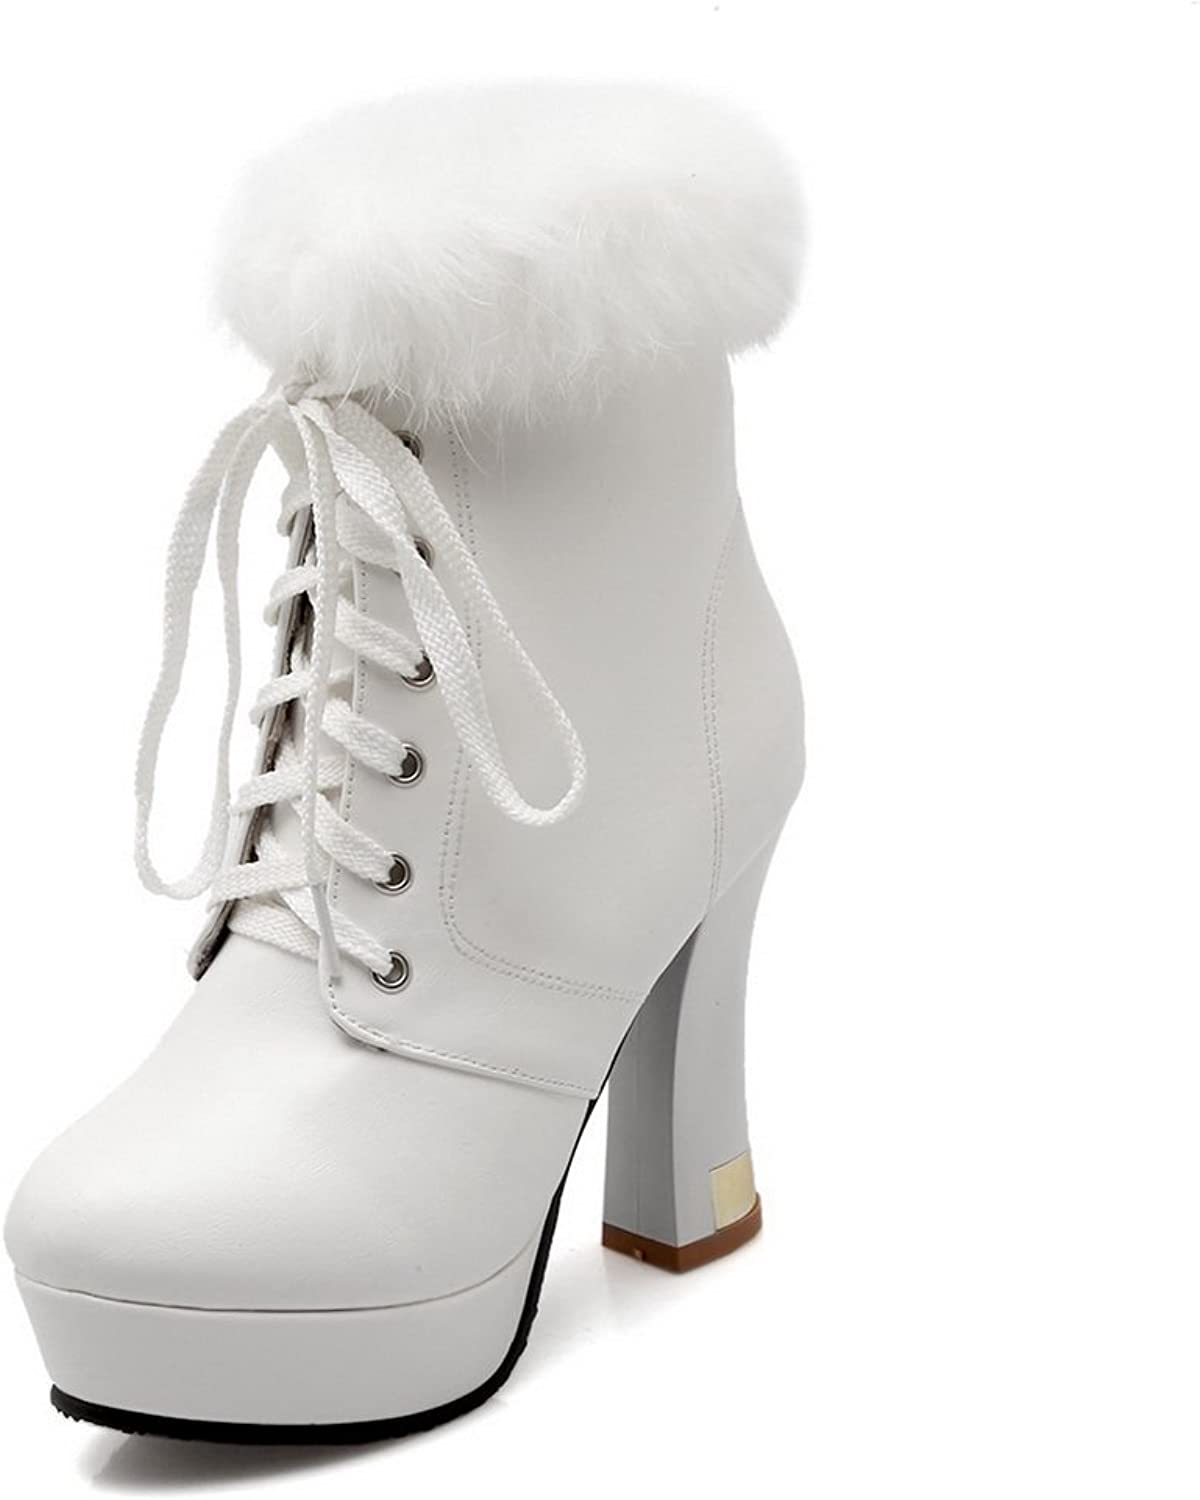 A&N Womens Lace-Up Fur Collar Platform Imitated Leather Boots